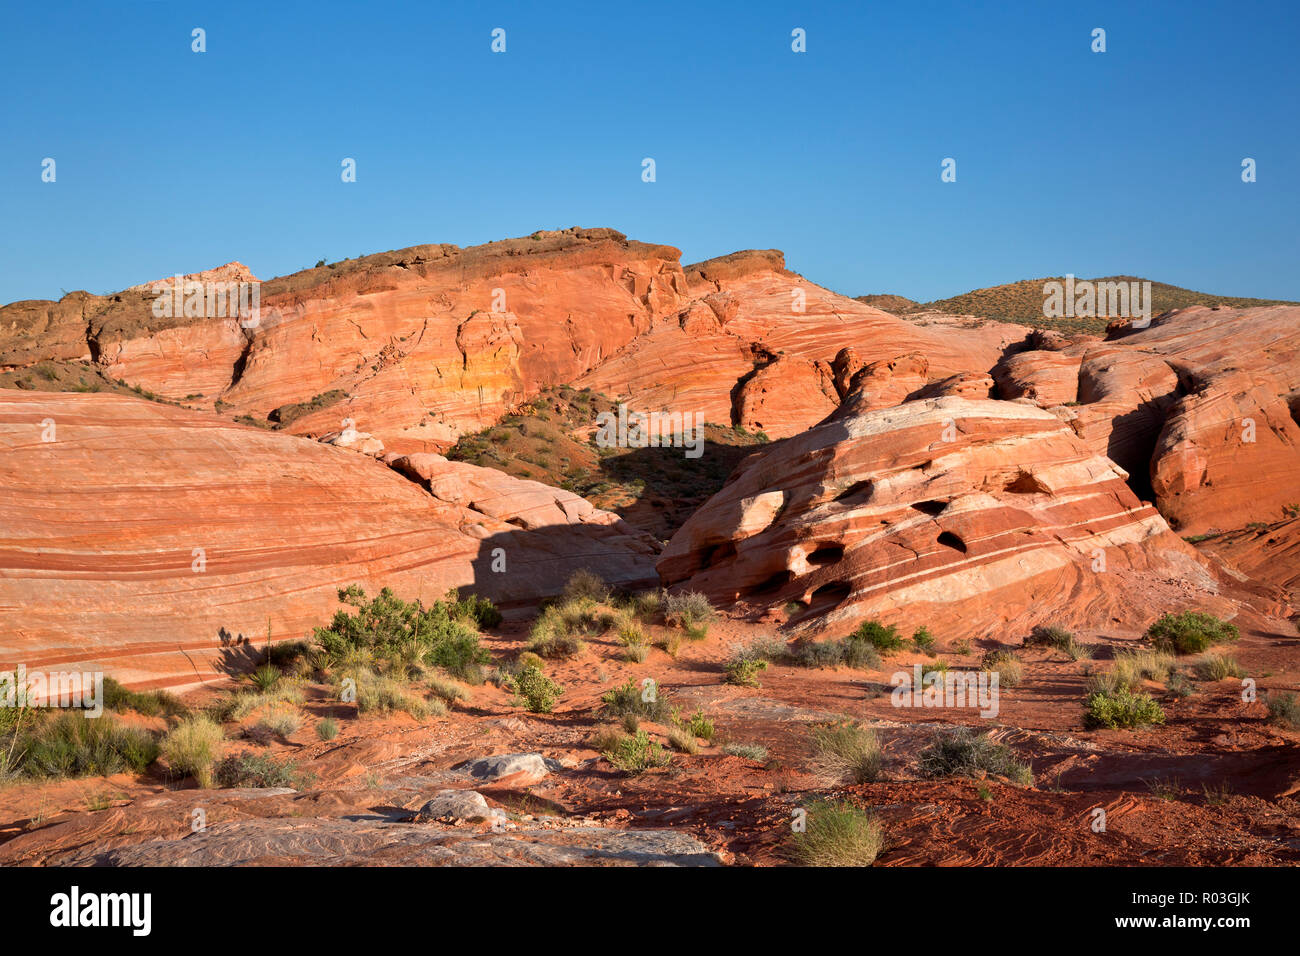 NV00068-00...NEVADA - Contrasting layers of sandstone near The Fire Wave  in the Valley of Fire State Park. - Stock Image